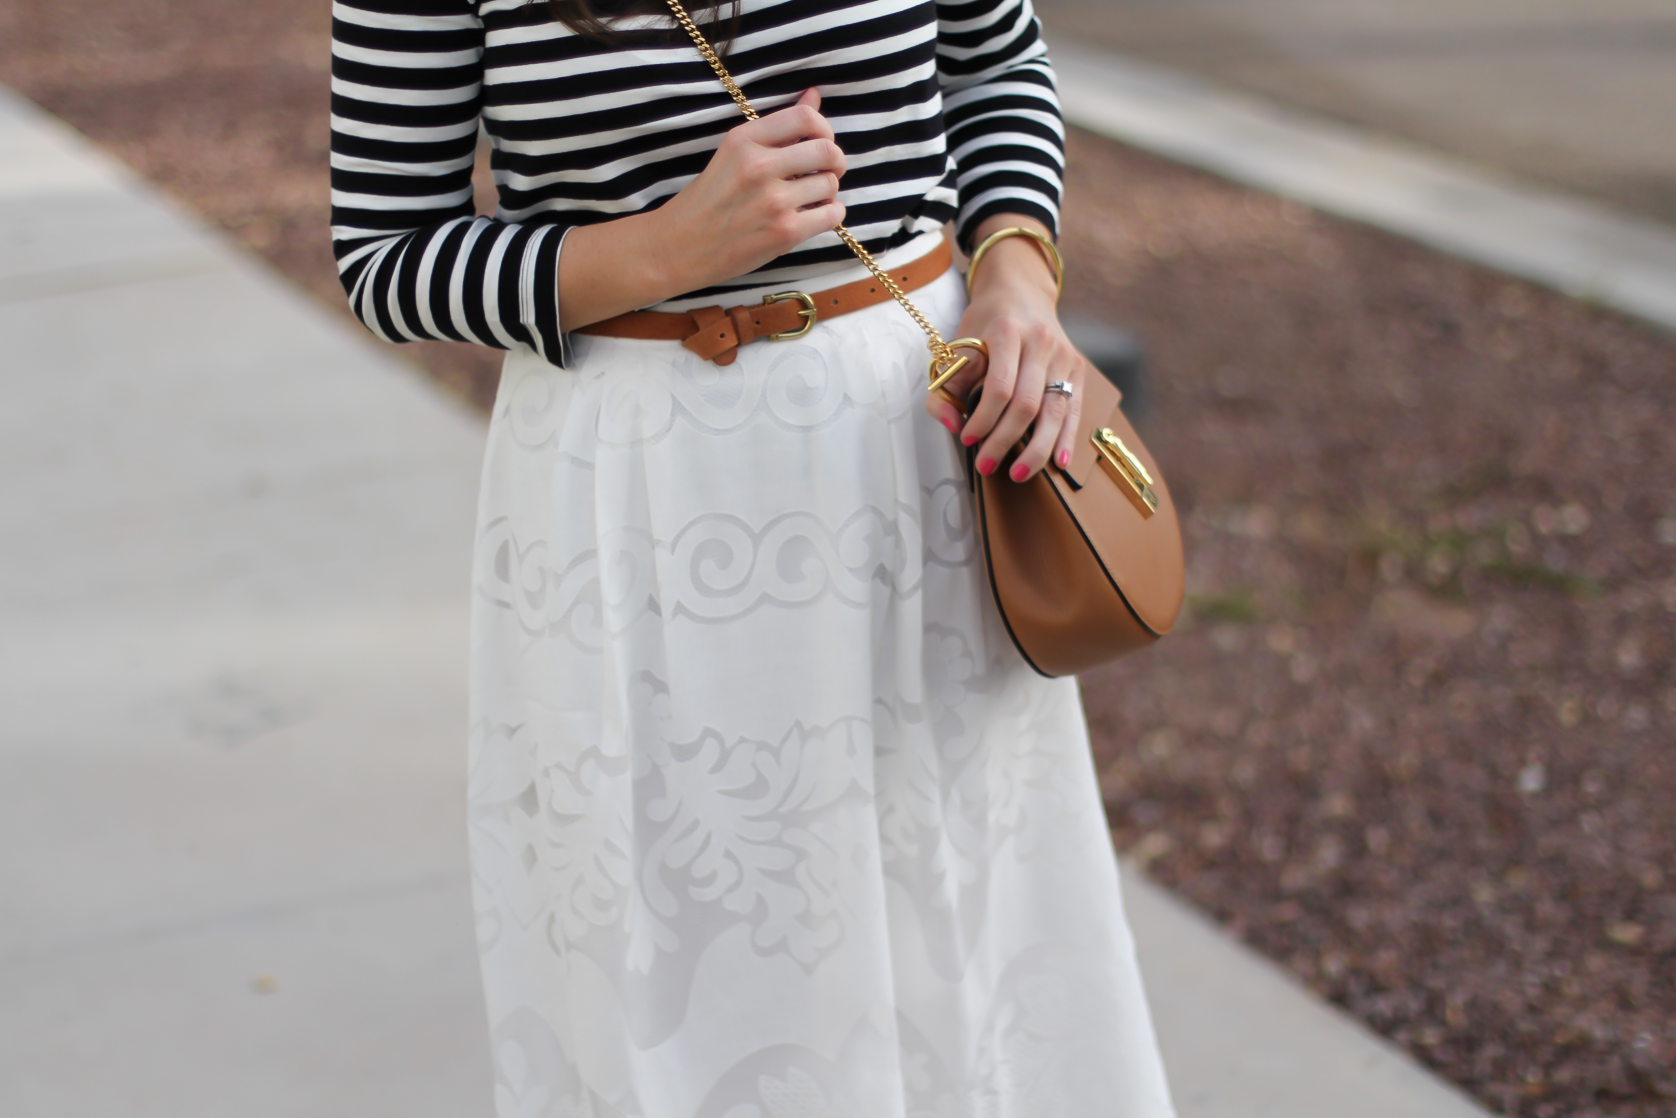 Lace White Midi Skirt, Black and White Striped Tee, Tan Leather Sandals, Tan Chain Strap Crossbody, J.Crew, Joie, Chloe 8